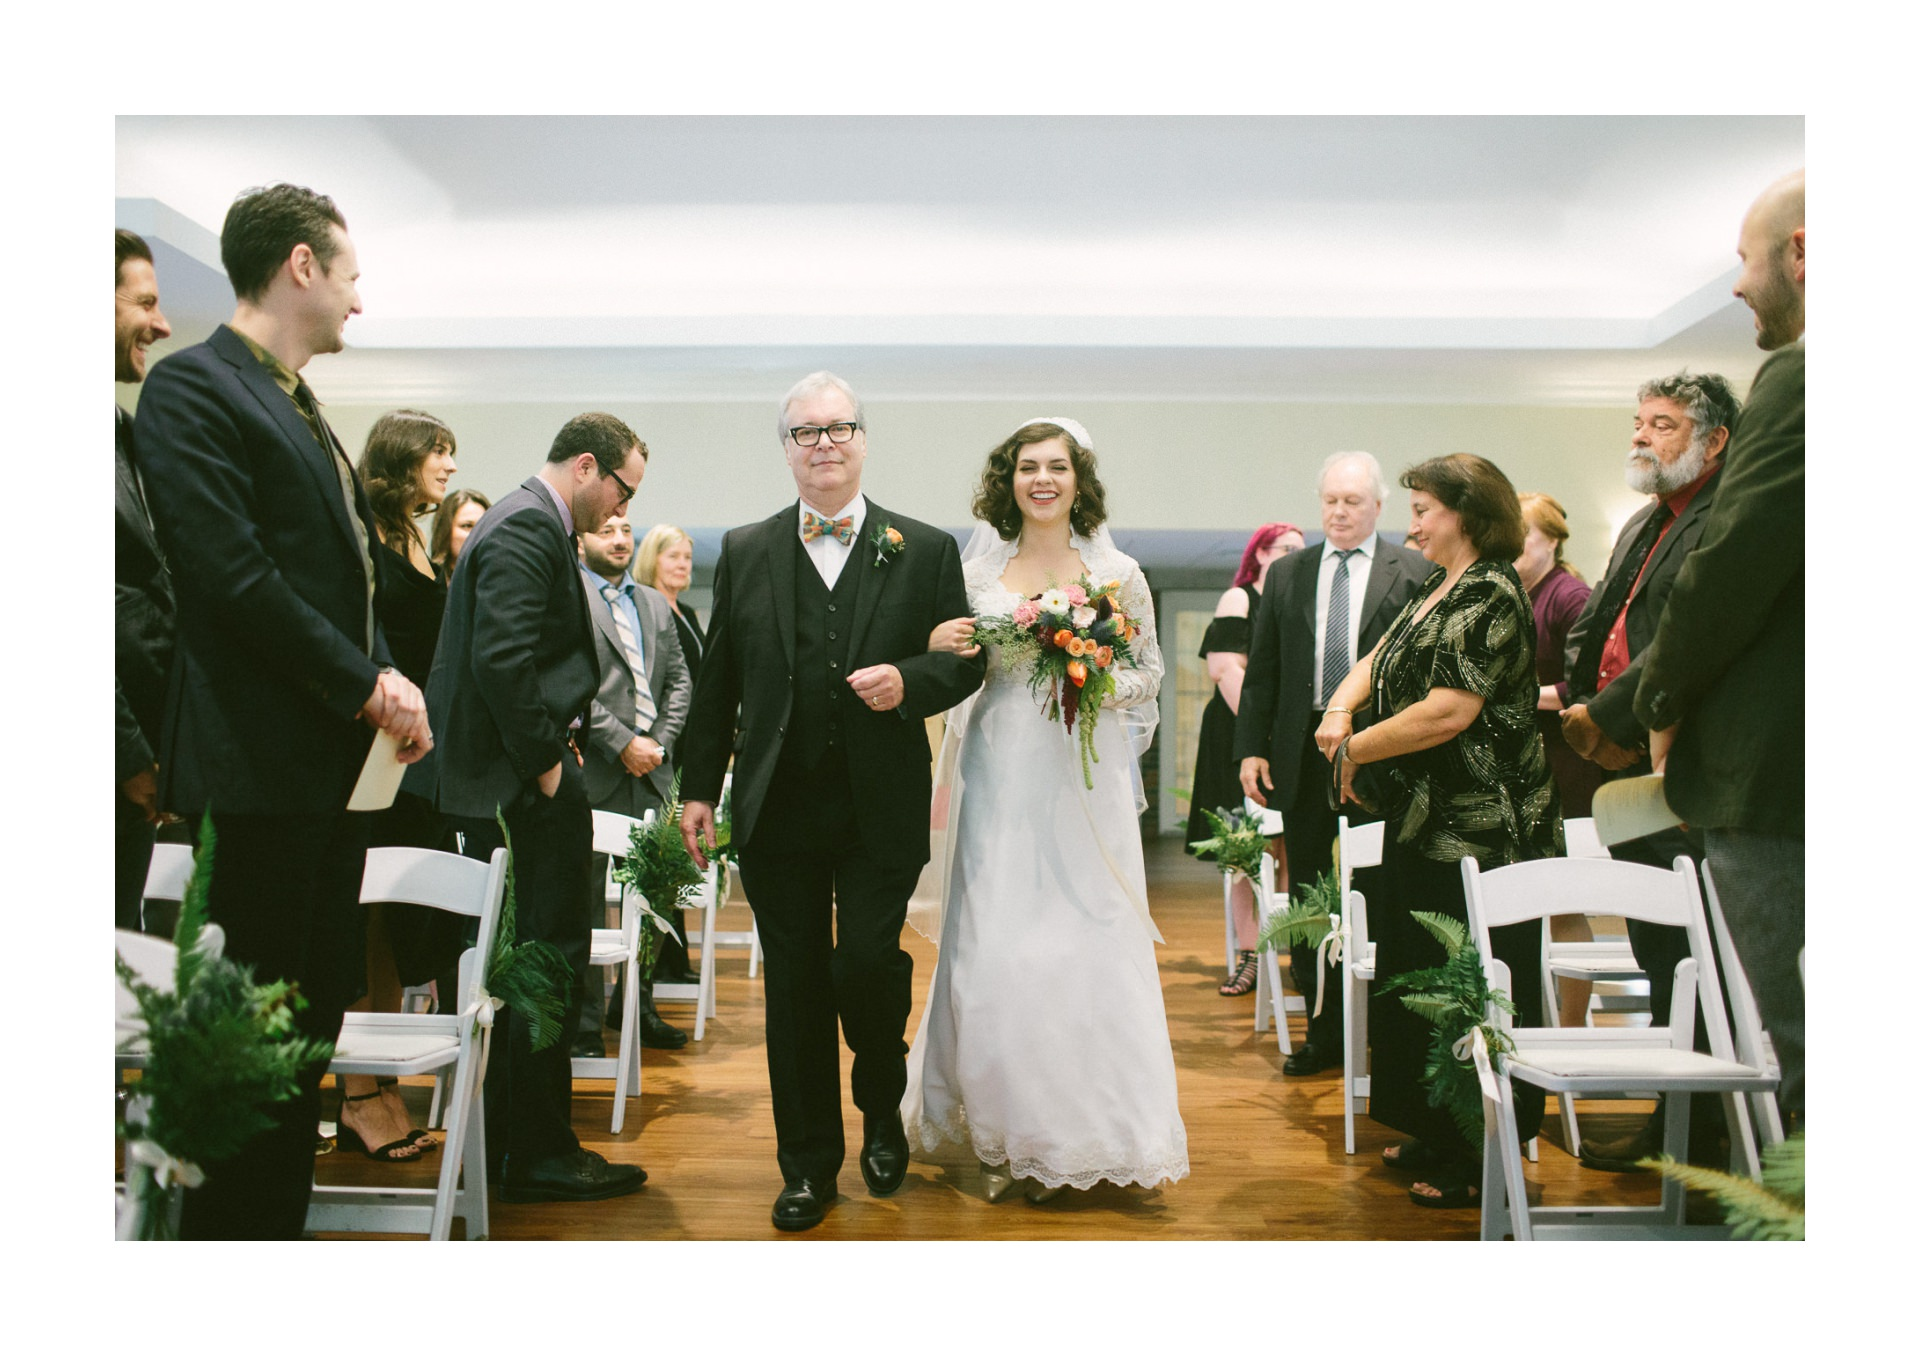 Wedding at the Glidden House in Cleveland 2 5.jpg